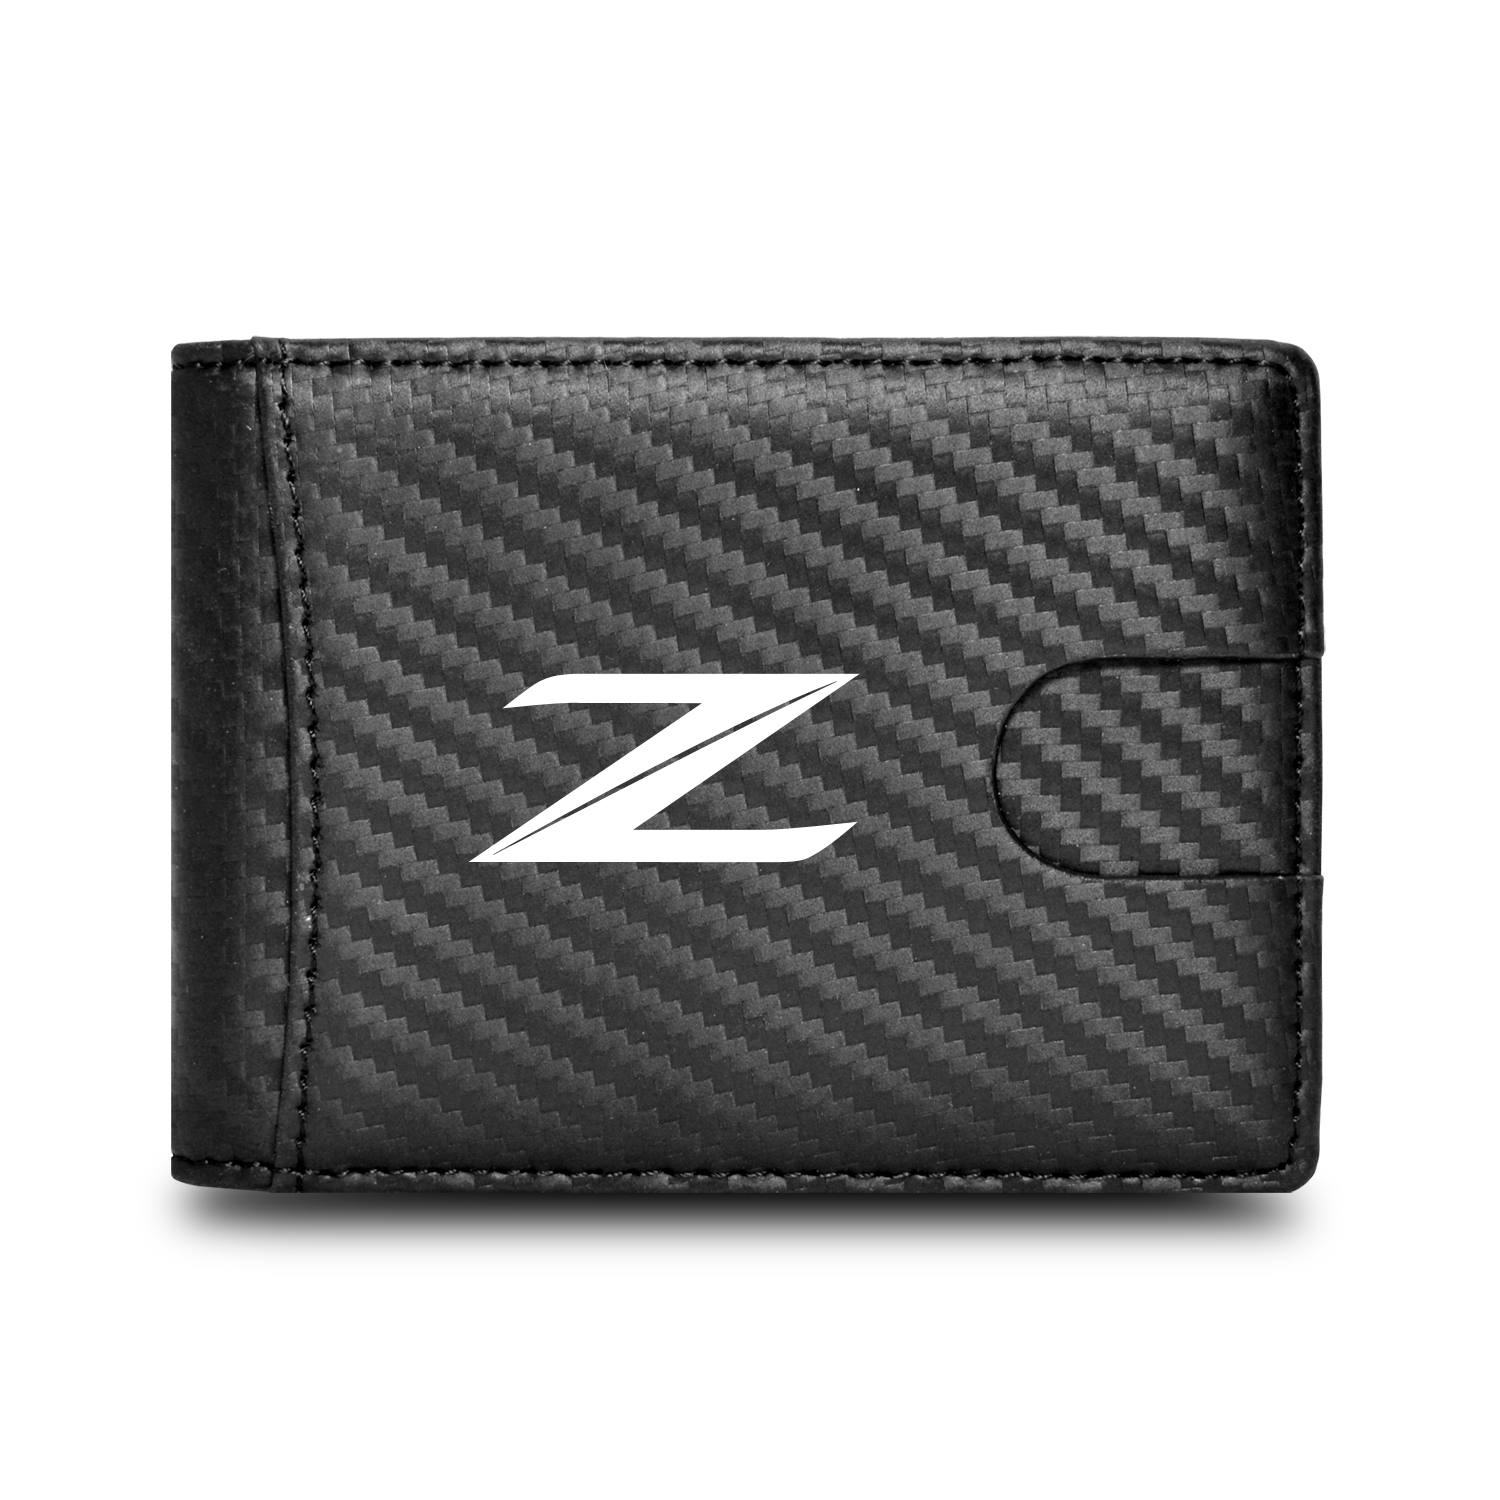 Nissan 370Z Z Logo Black Slim Real Leather Carbon Fiber Patterns RFID Blocking Bi-fold Wallet